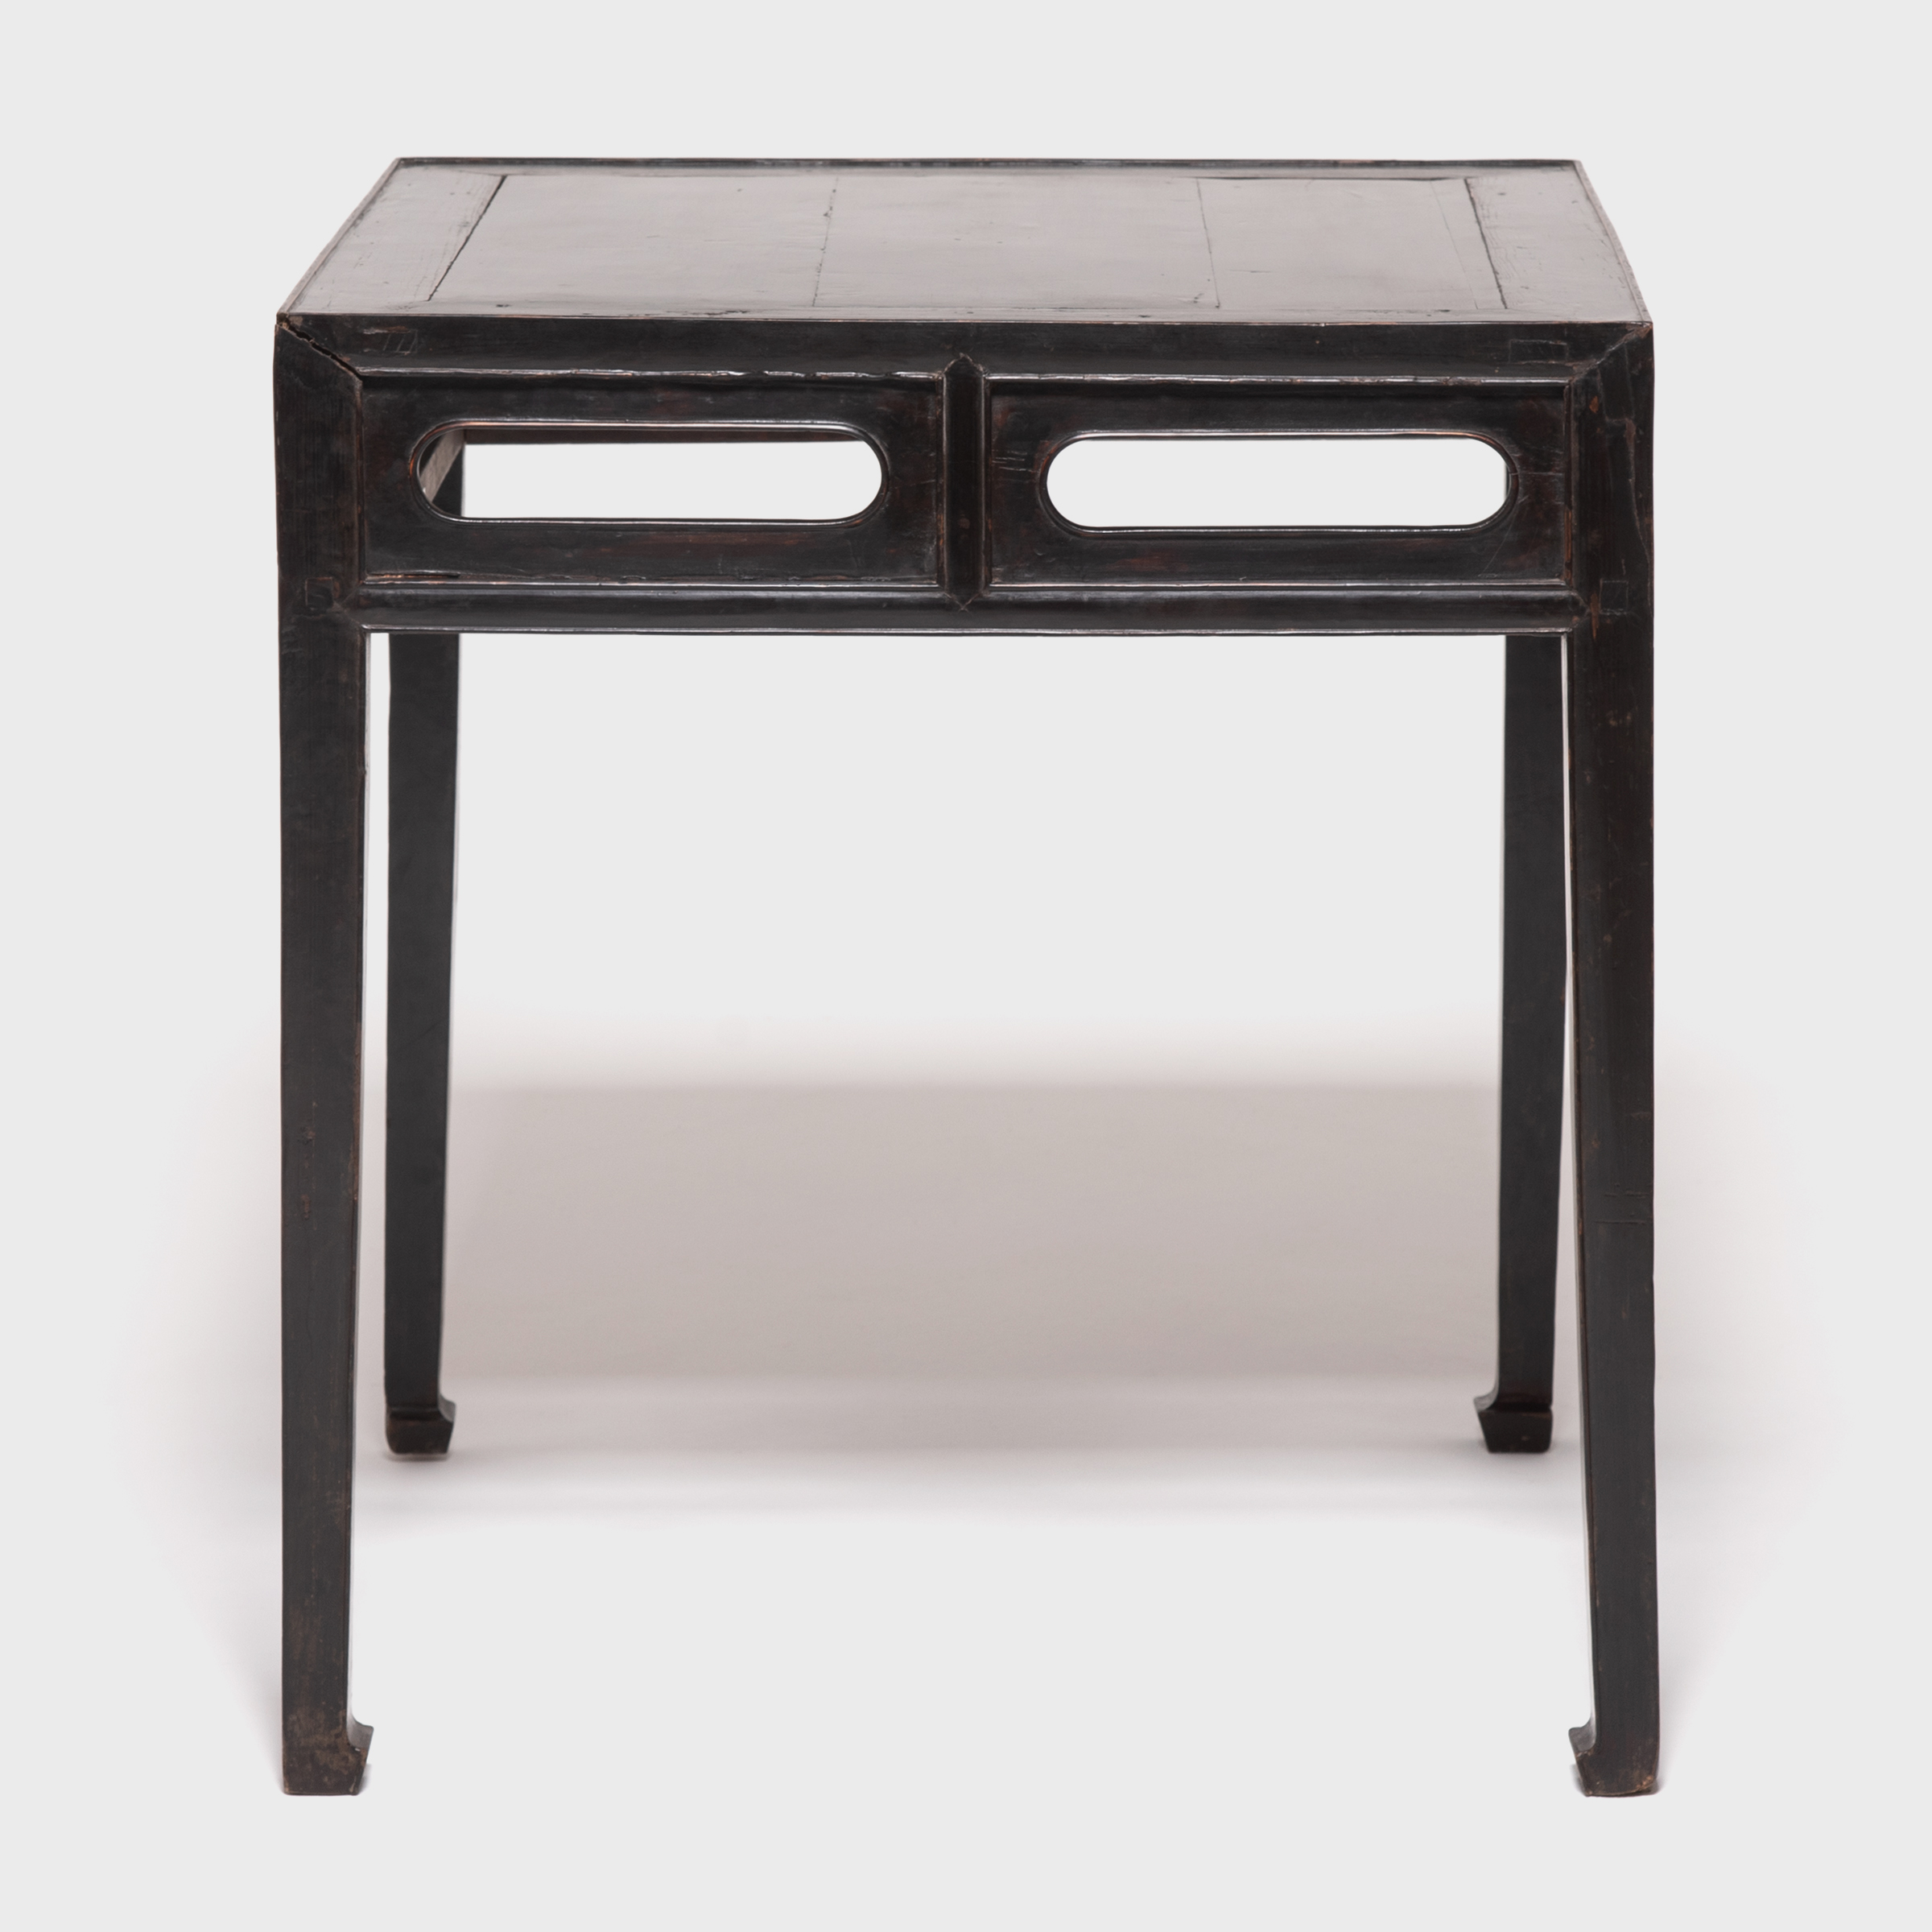 Black Lacquer Square Table With Hoof Feet Browse Or Buy At